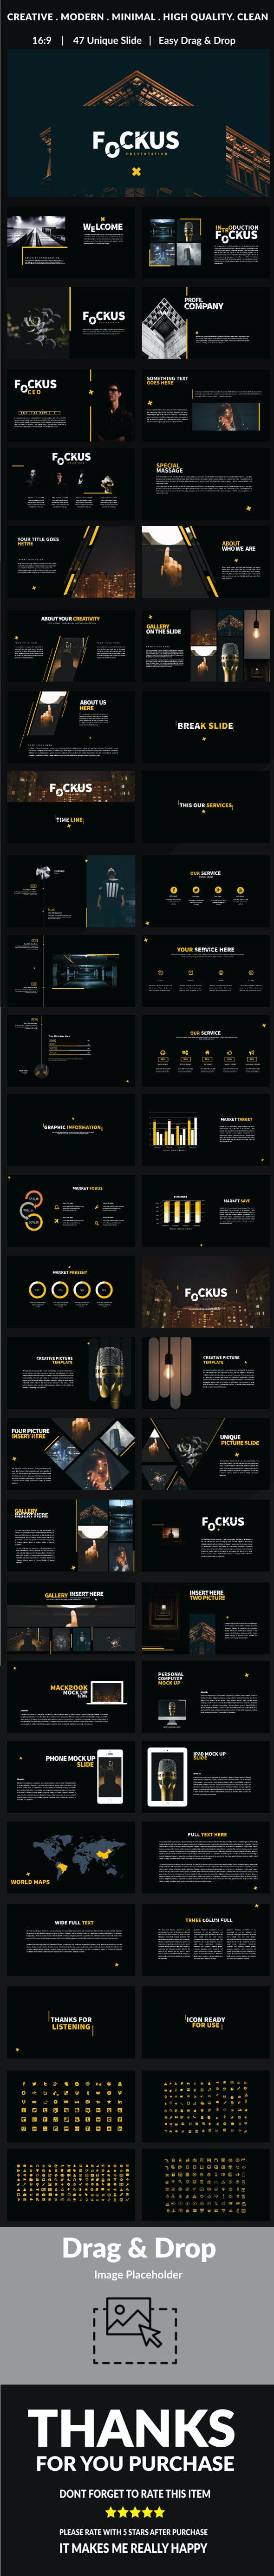 fockus google slide by jyxd graphicriver